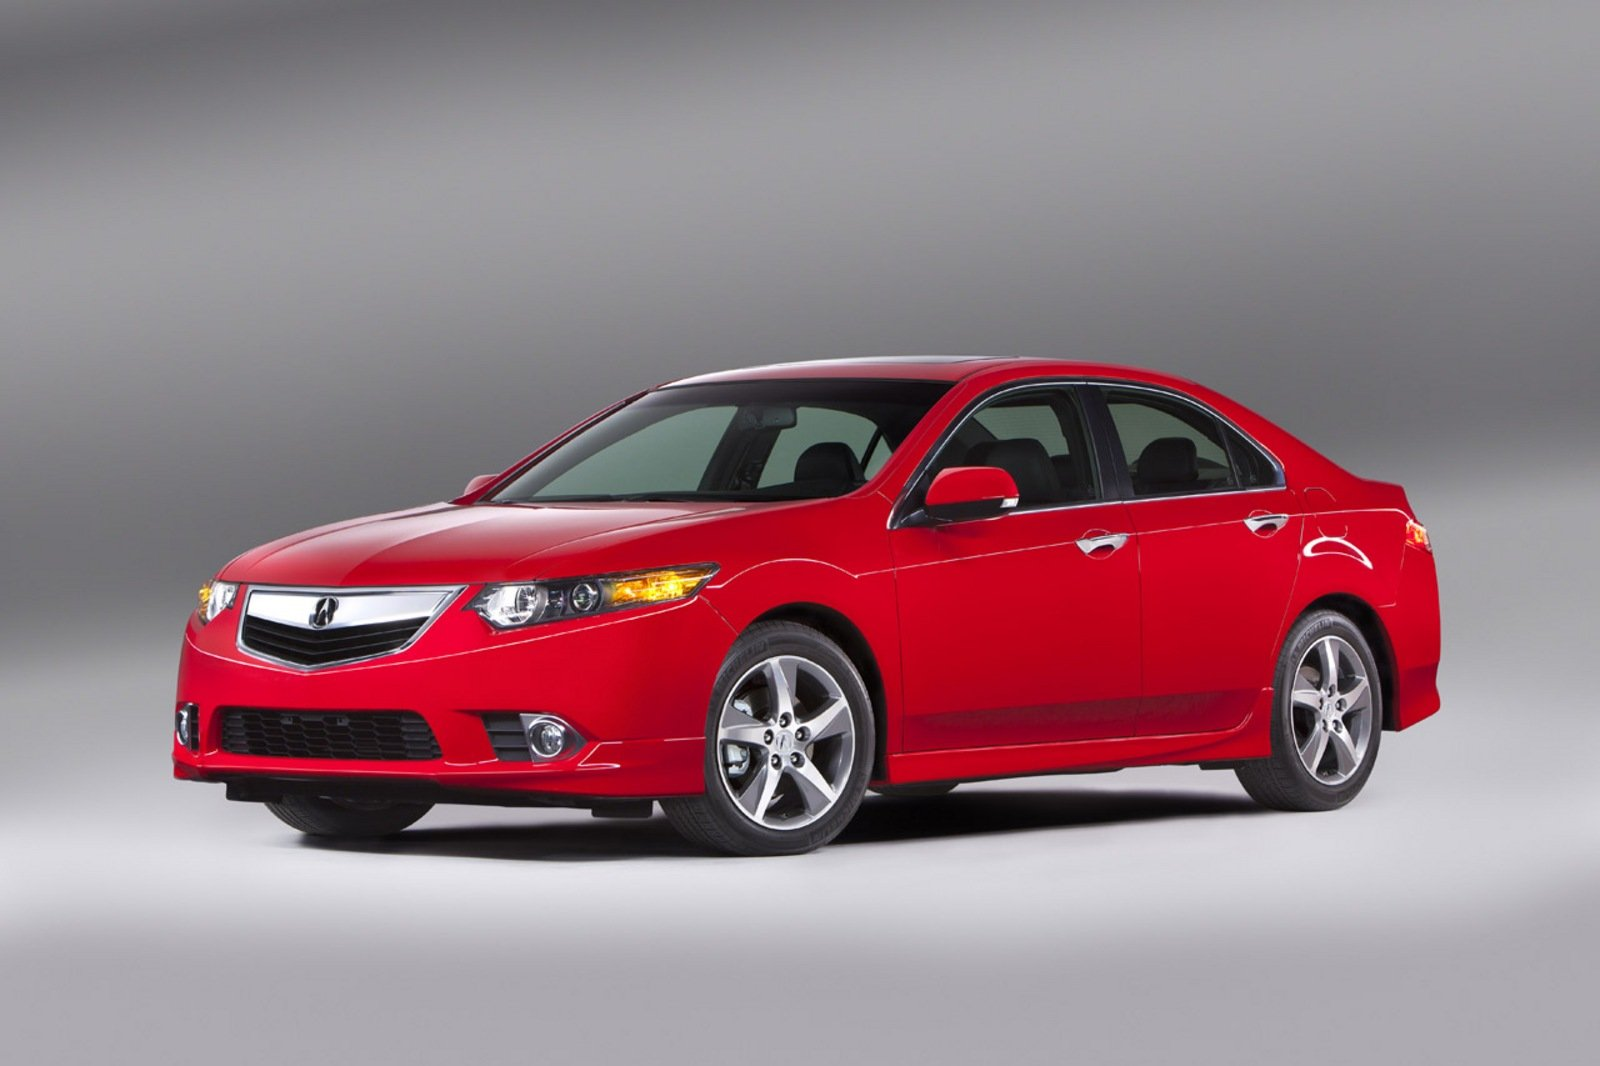 2012 acura tsx special edition review top speed. Black Bedroom Furniture Sets. Home Design Ideas